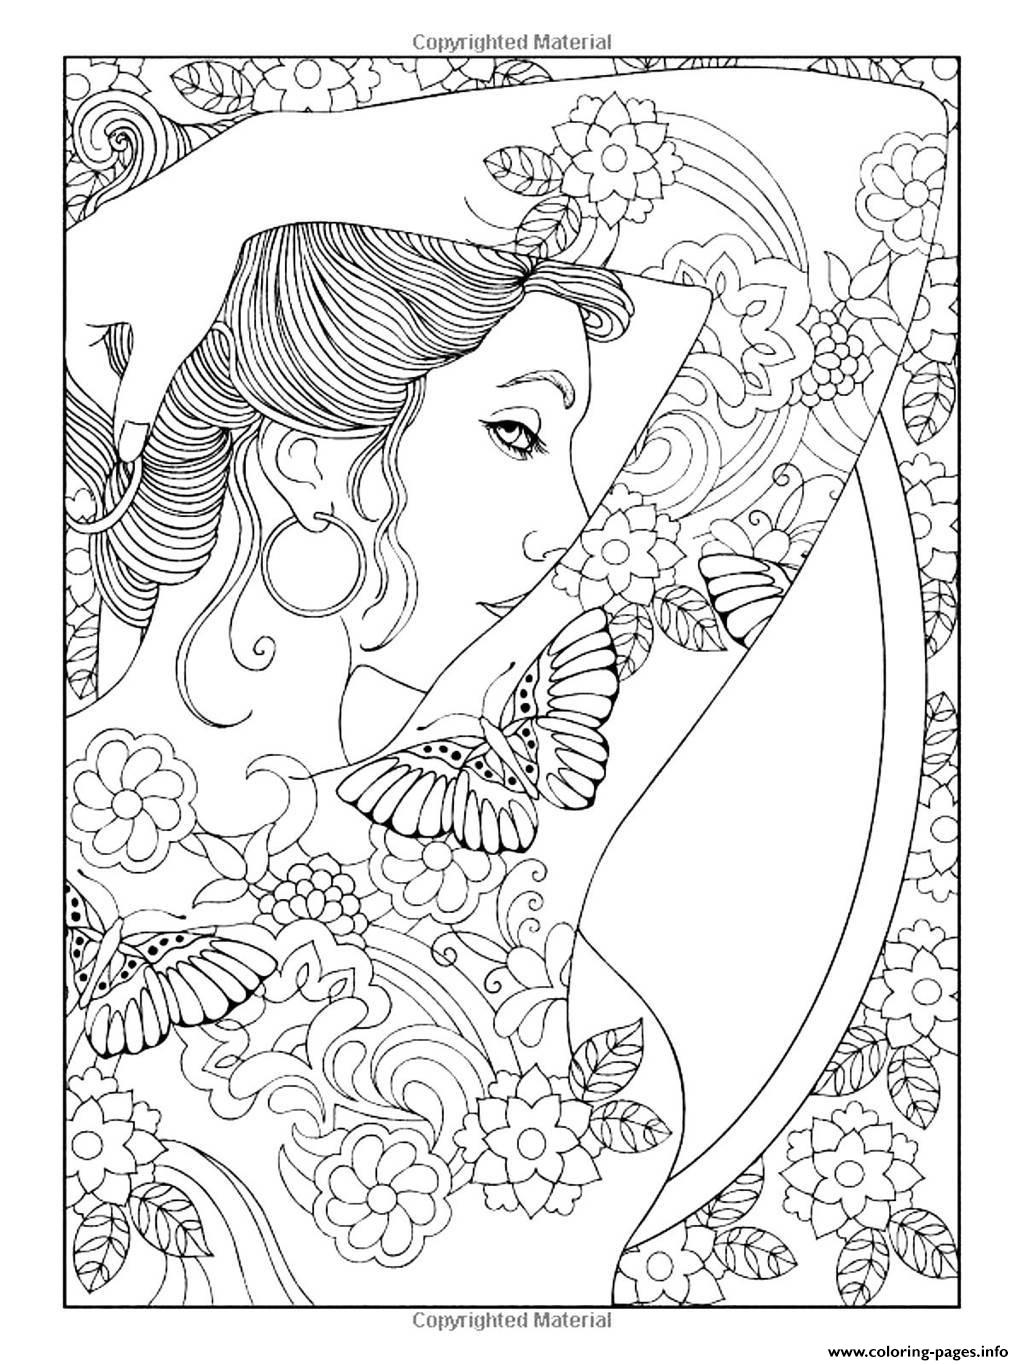 Coloring pages woman - Coloring Pages Woman 19